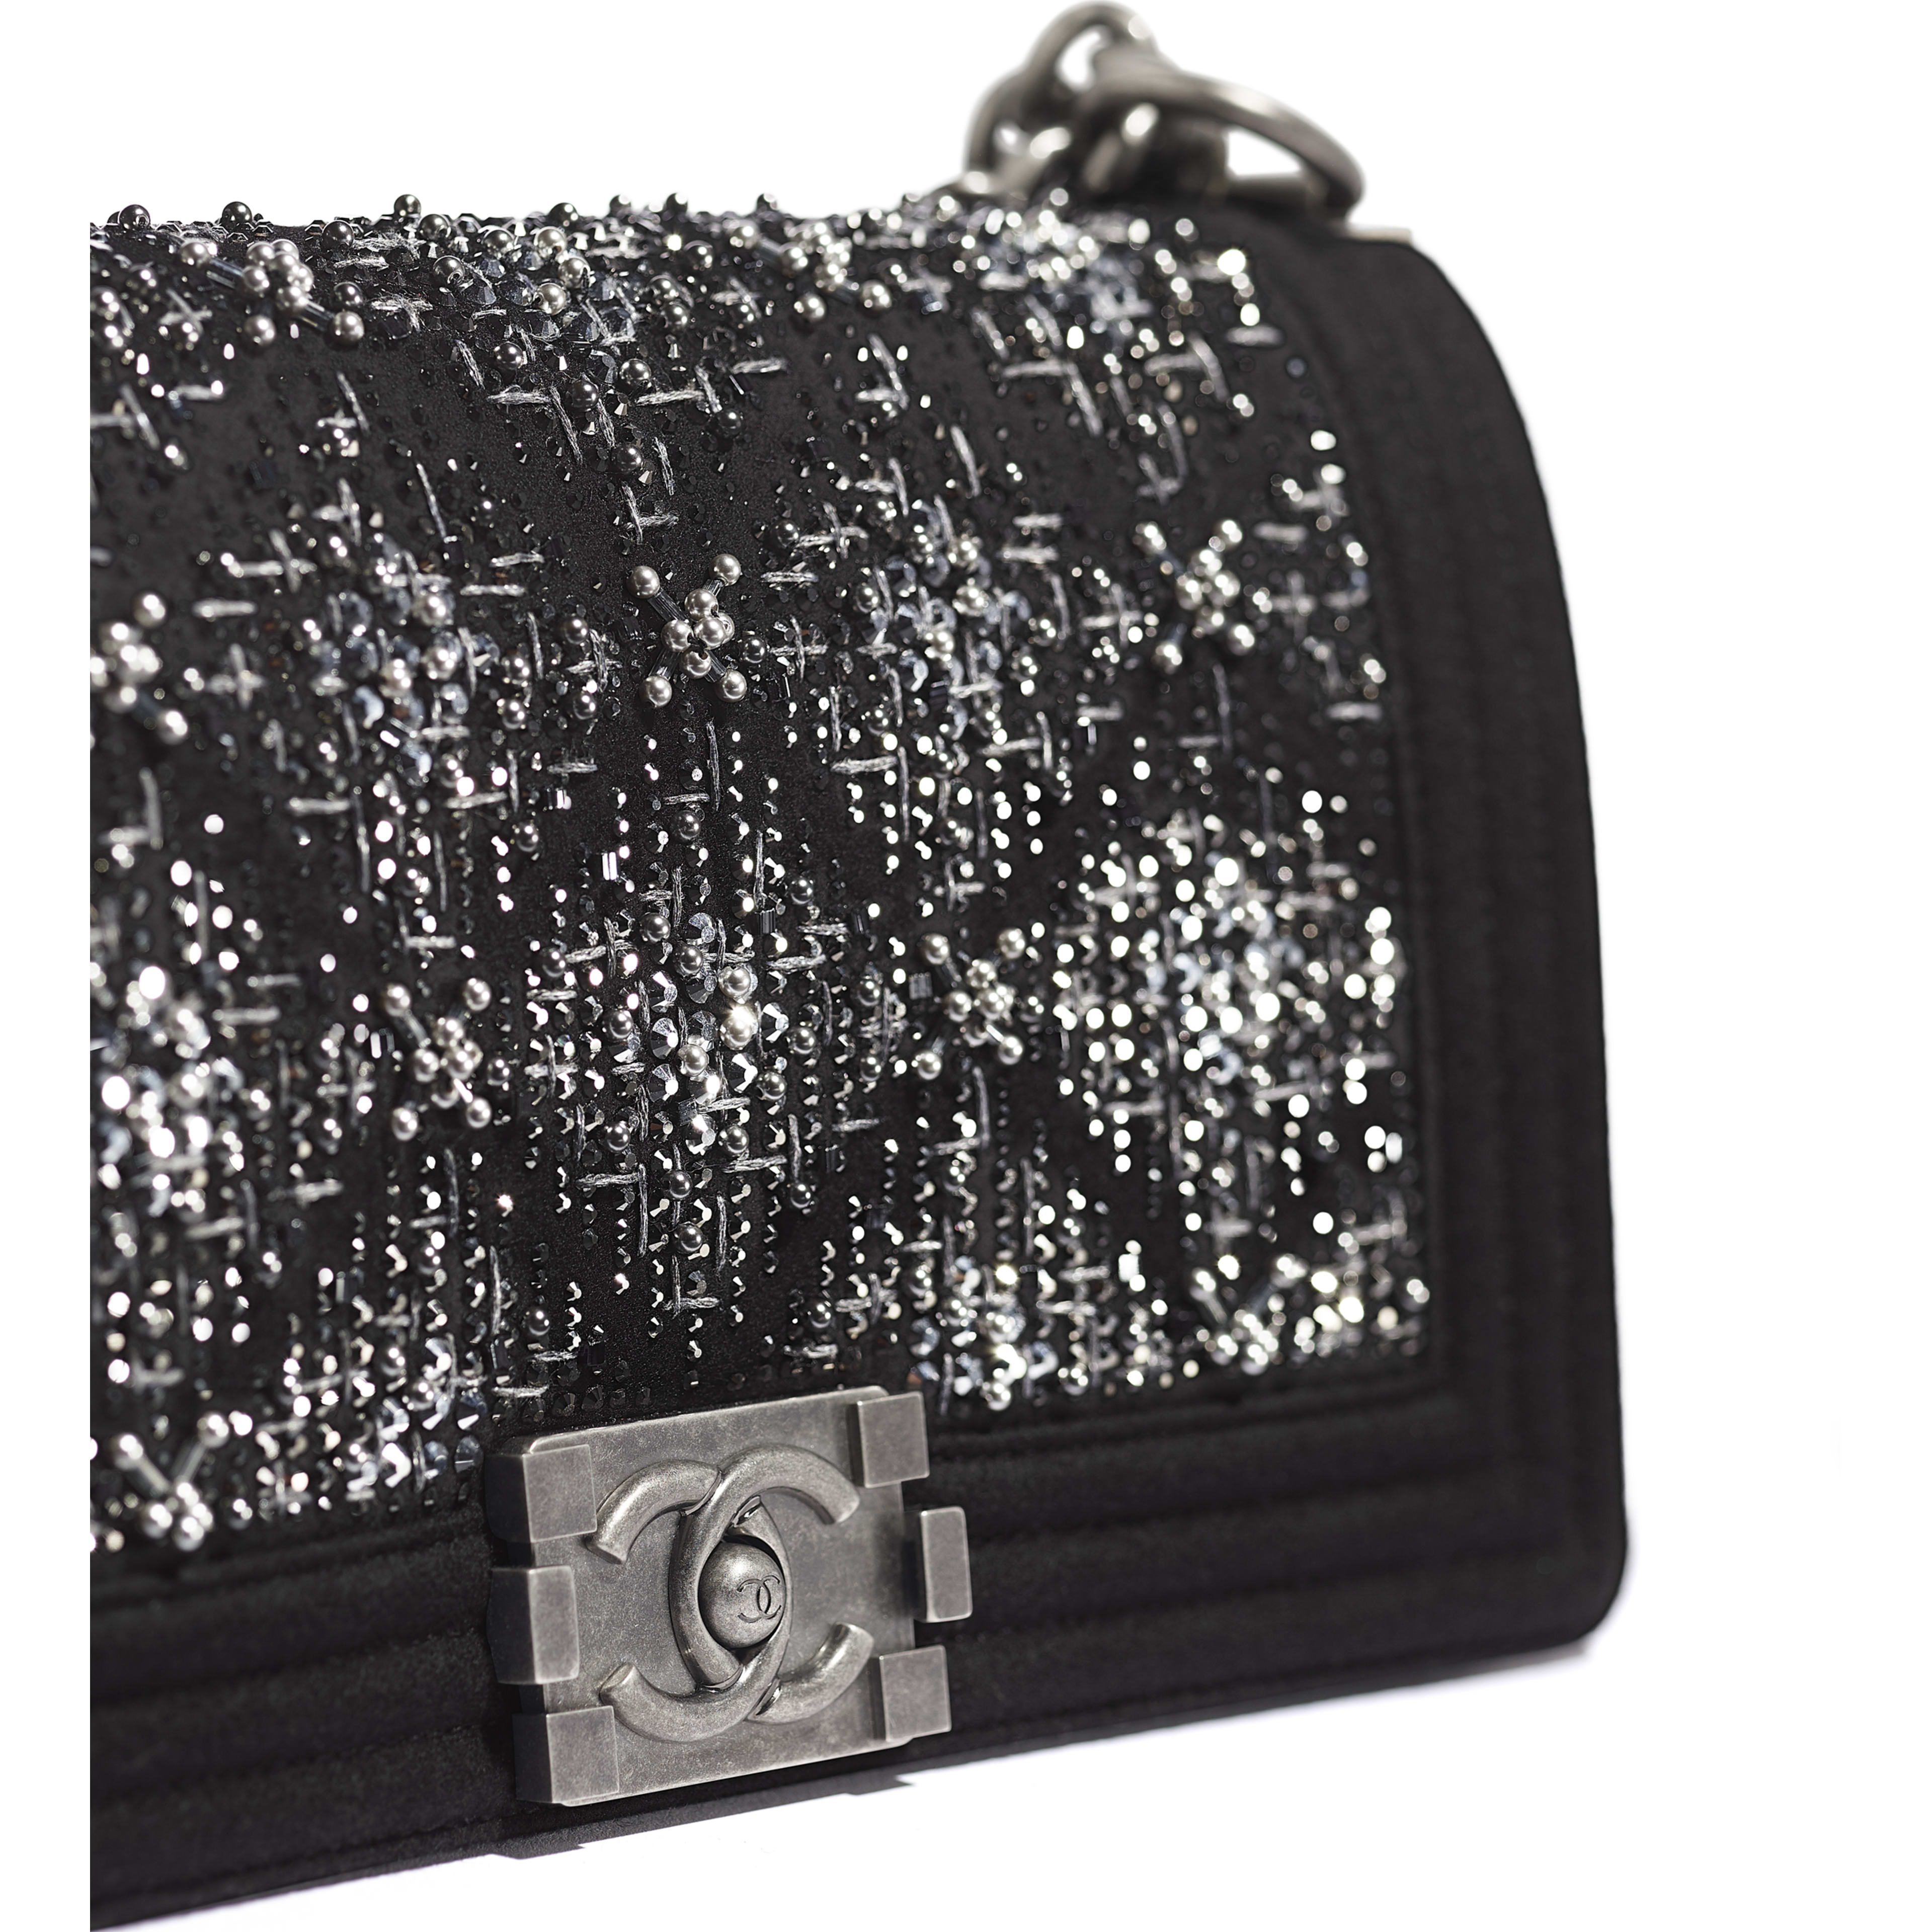 BOY CHANEL Handbag - Black - Wool, Strass & Ruthenium-Finish Metal - Extra view - see full sized version